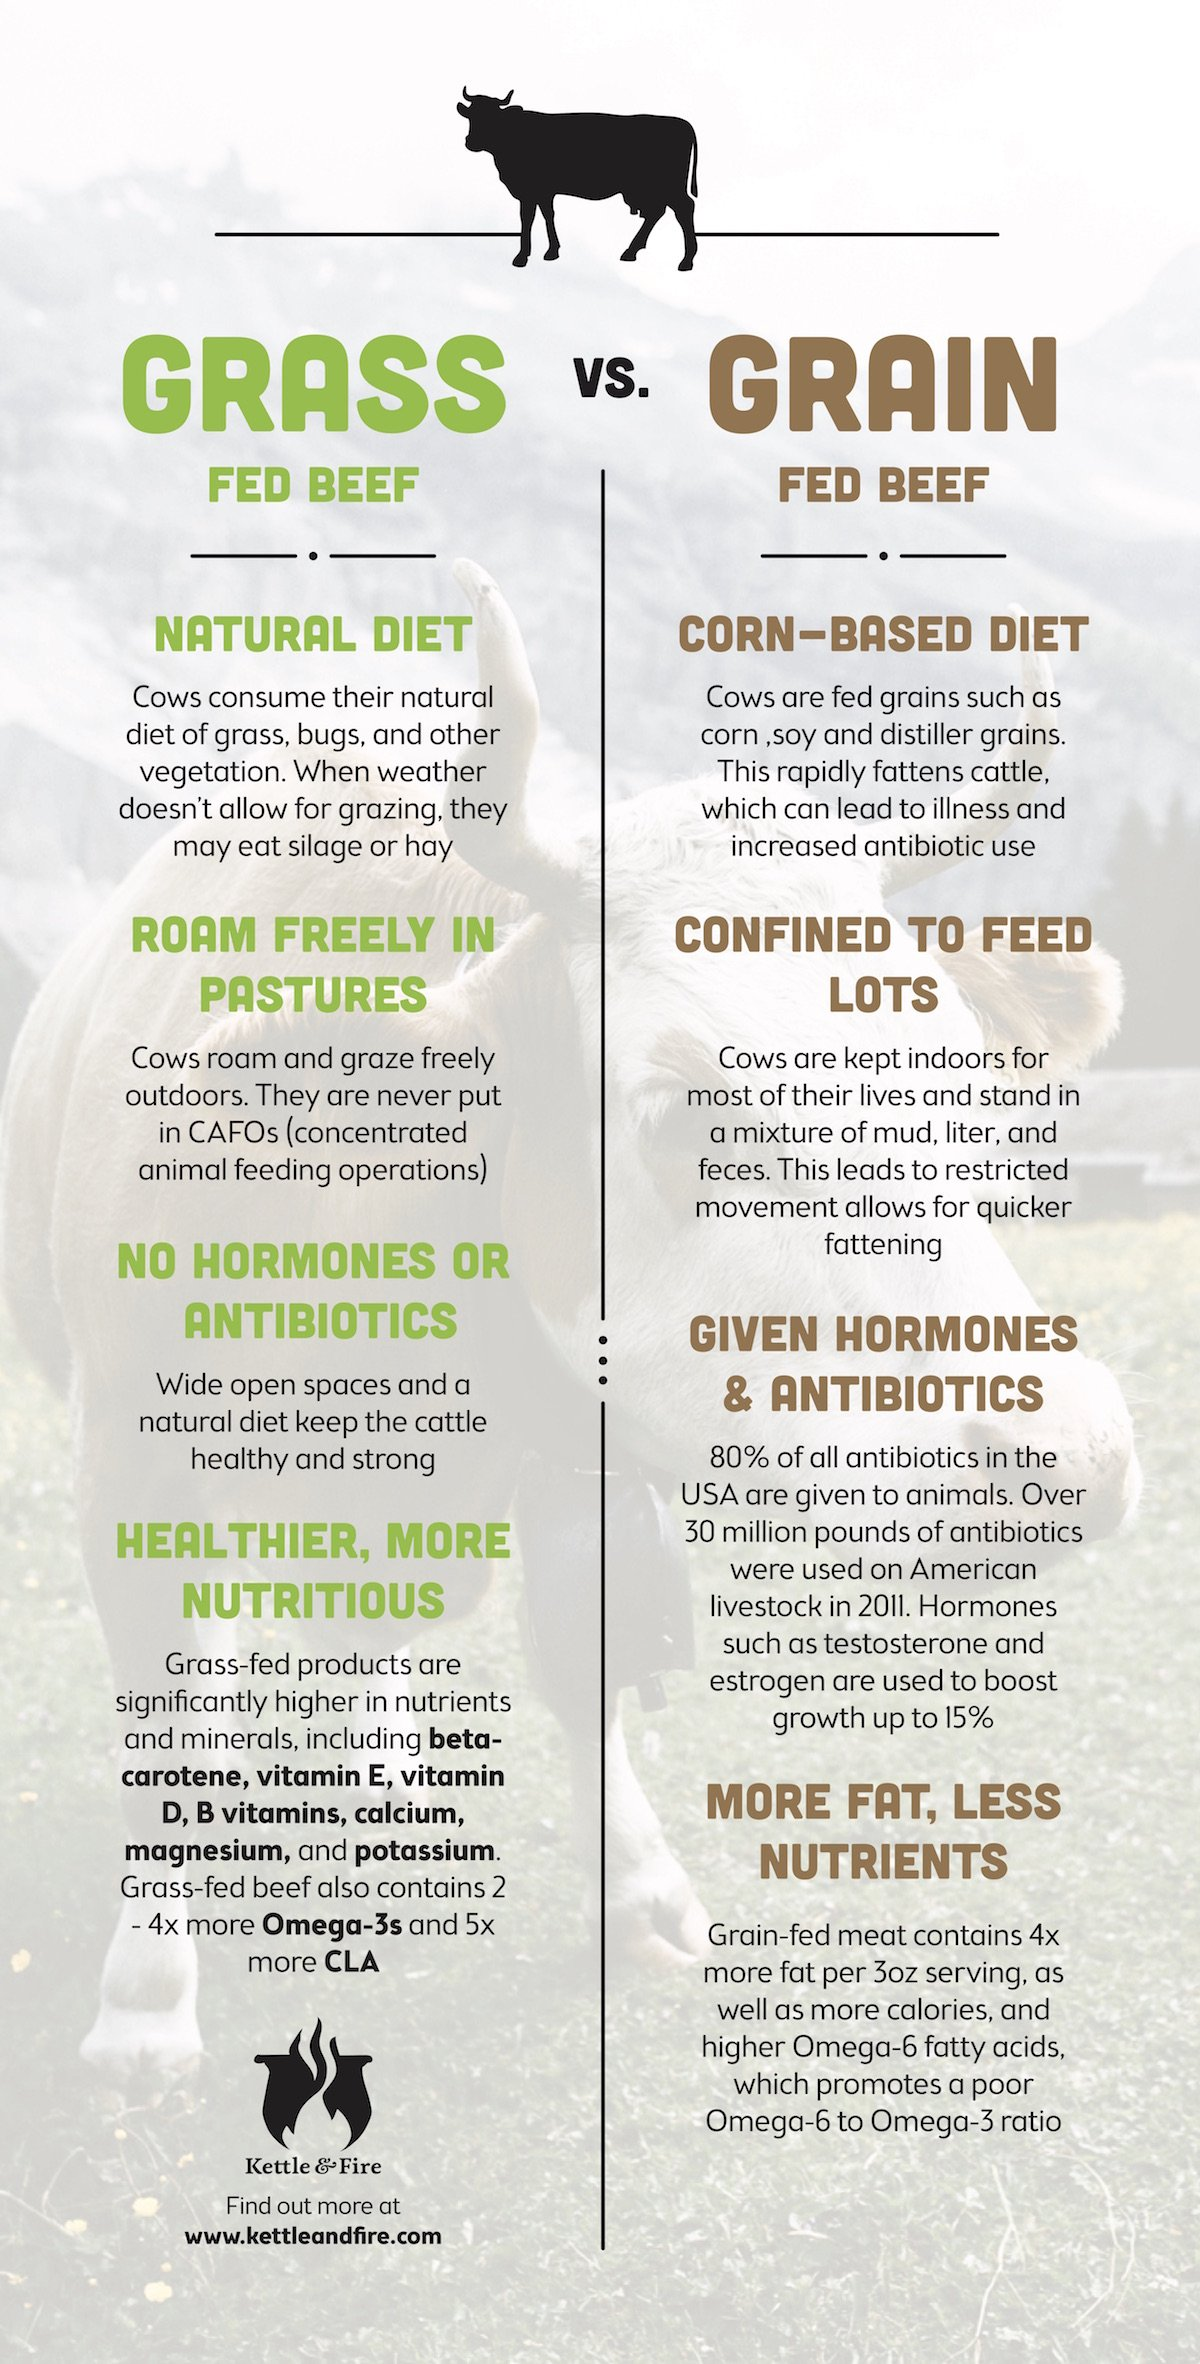 infographic showing The difference among grain-fed beef and grass-fed beef